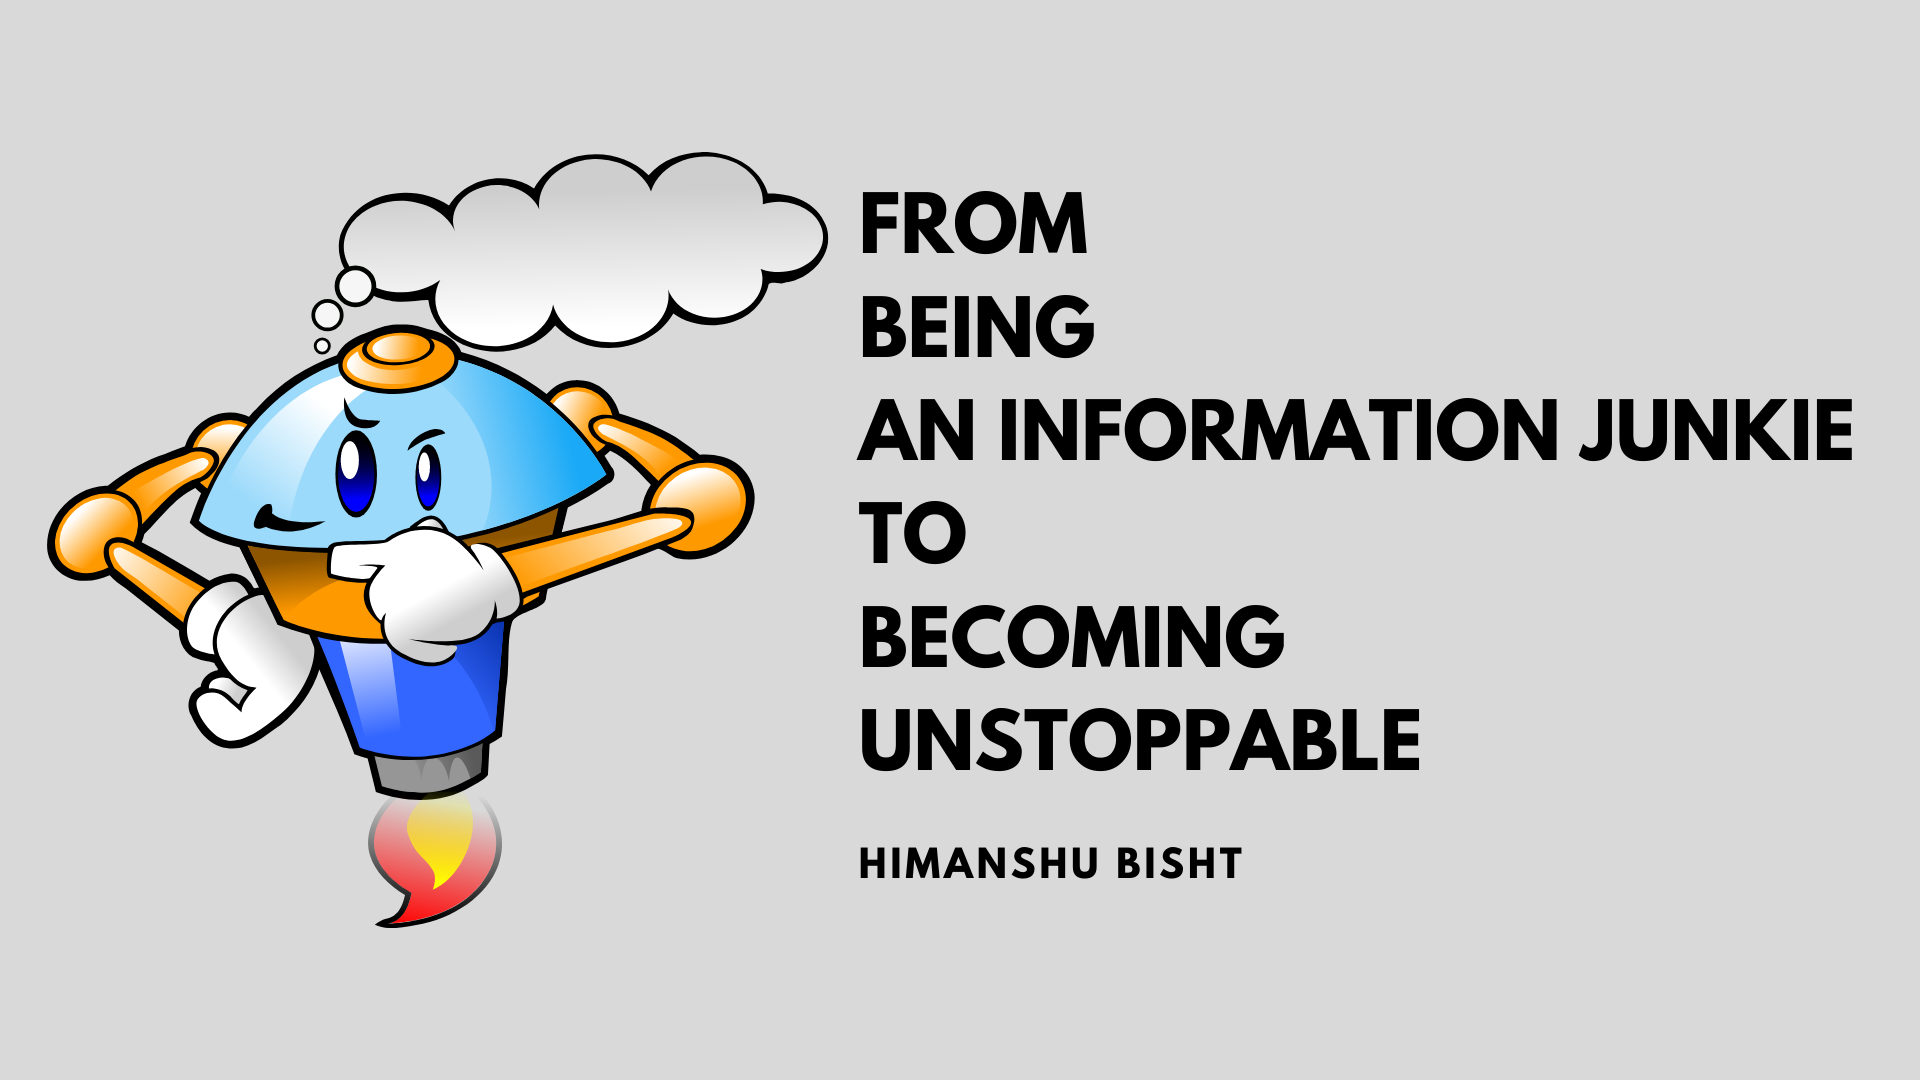 stop being an information junkie